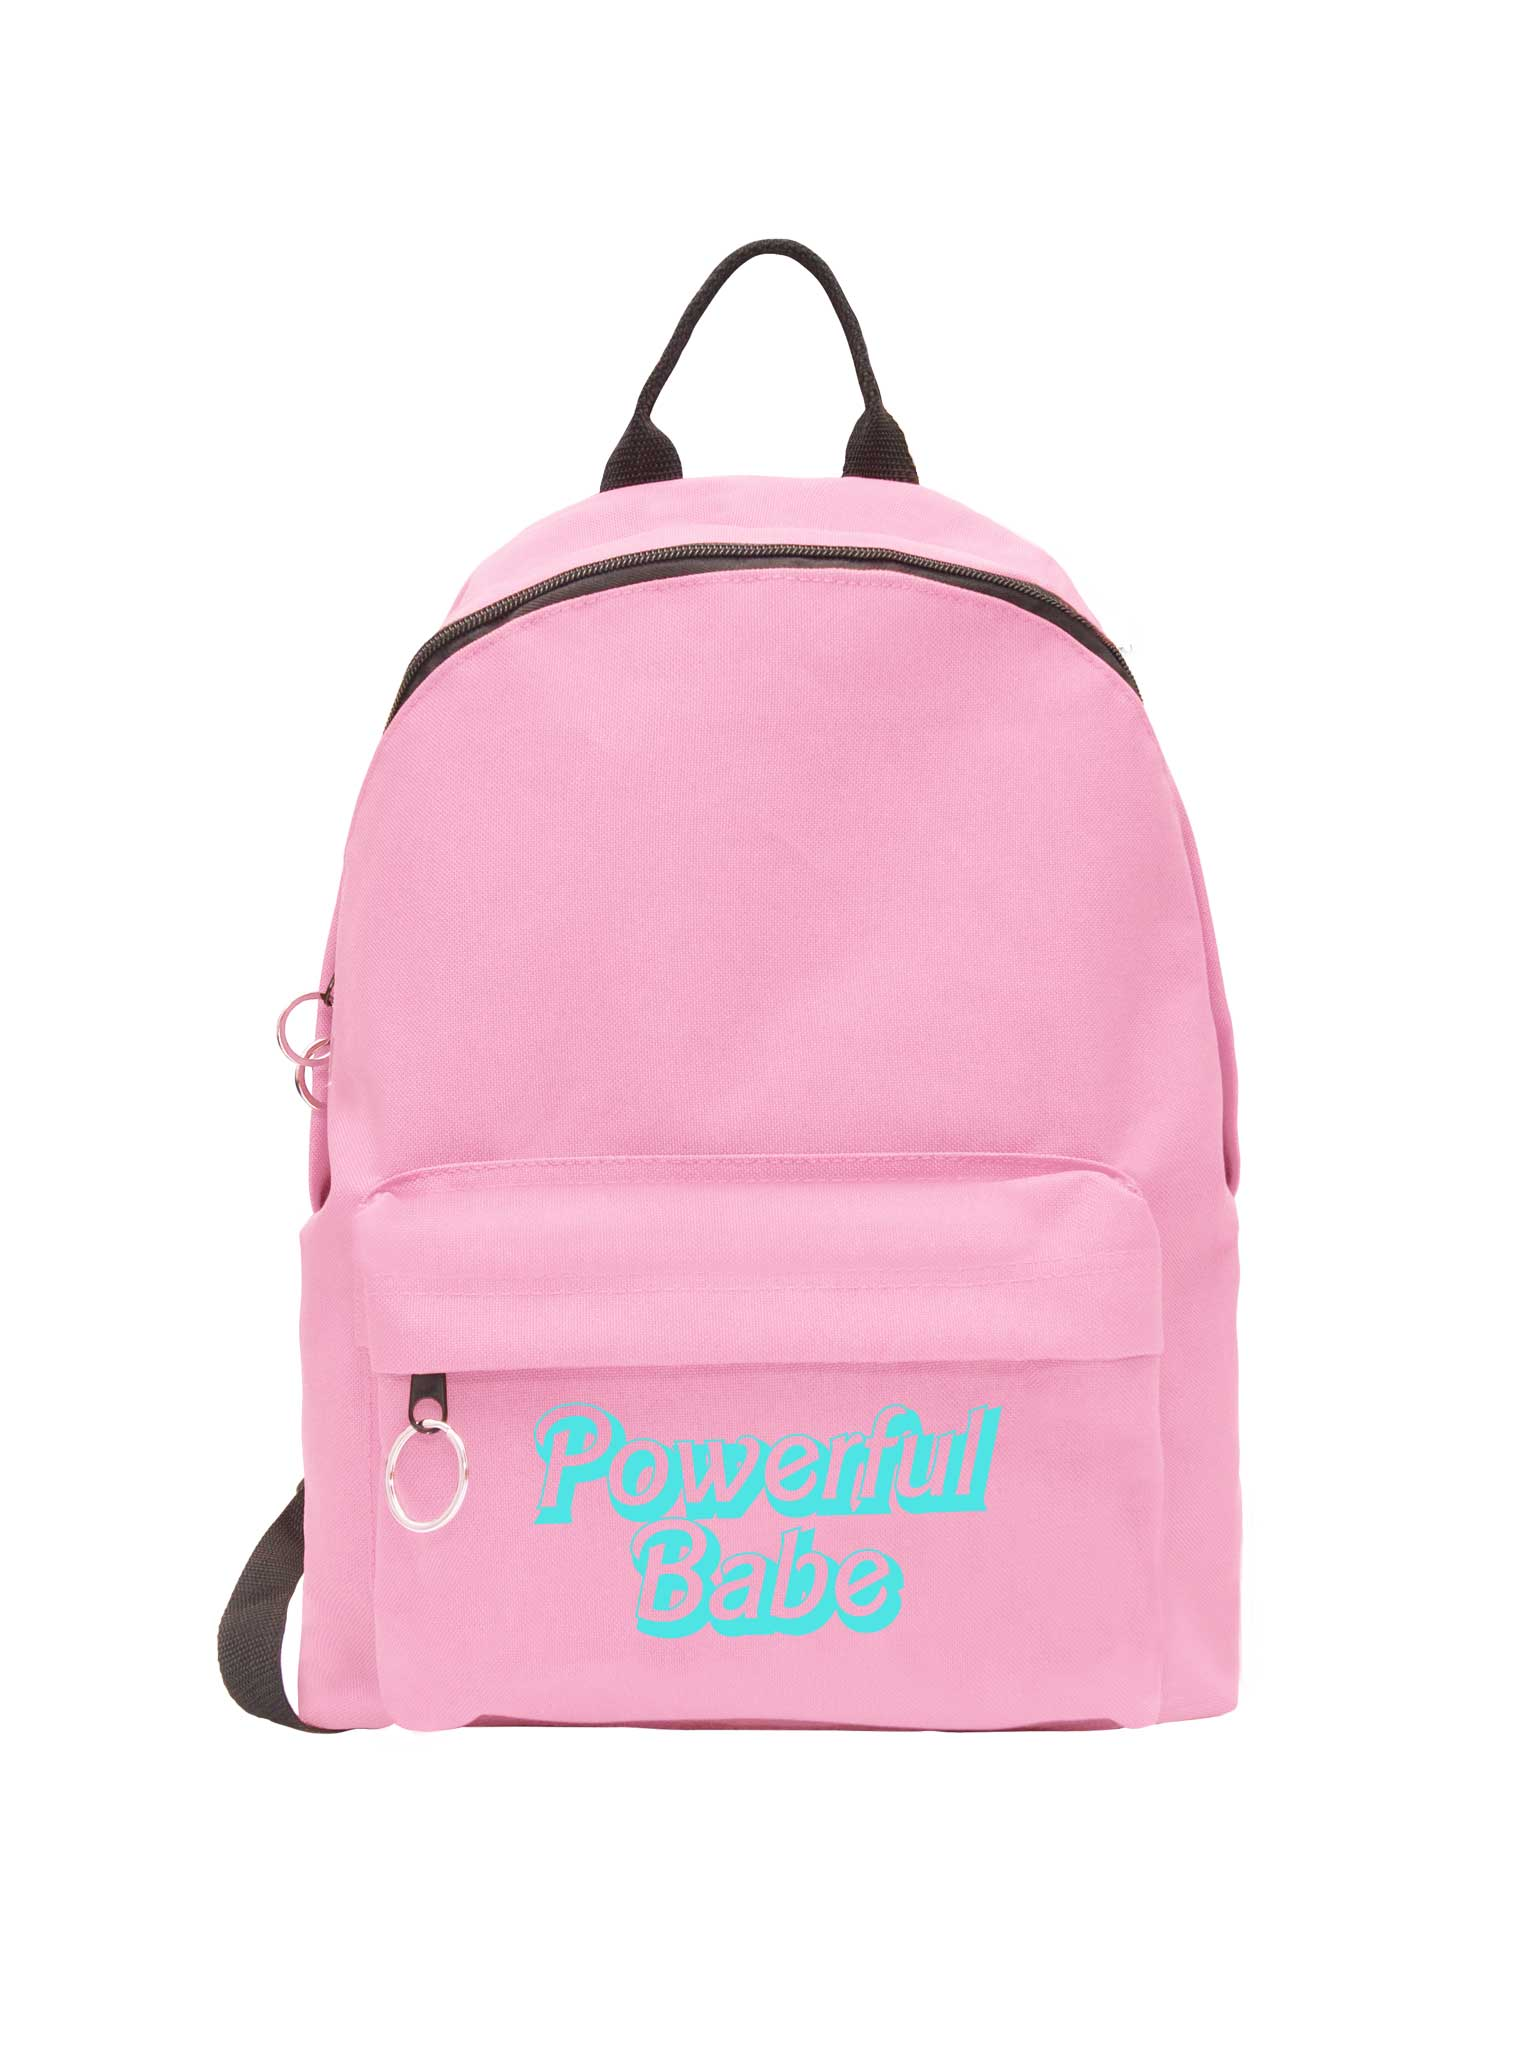 Powerful Babe Backpack